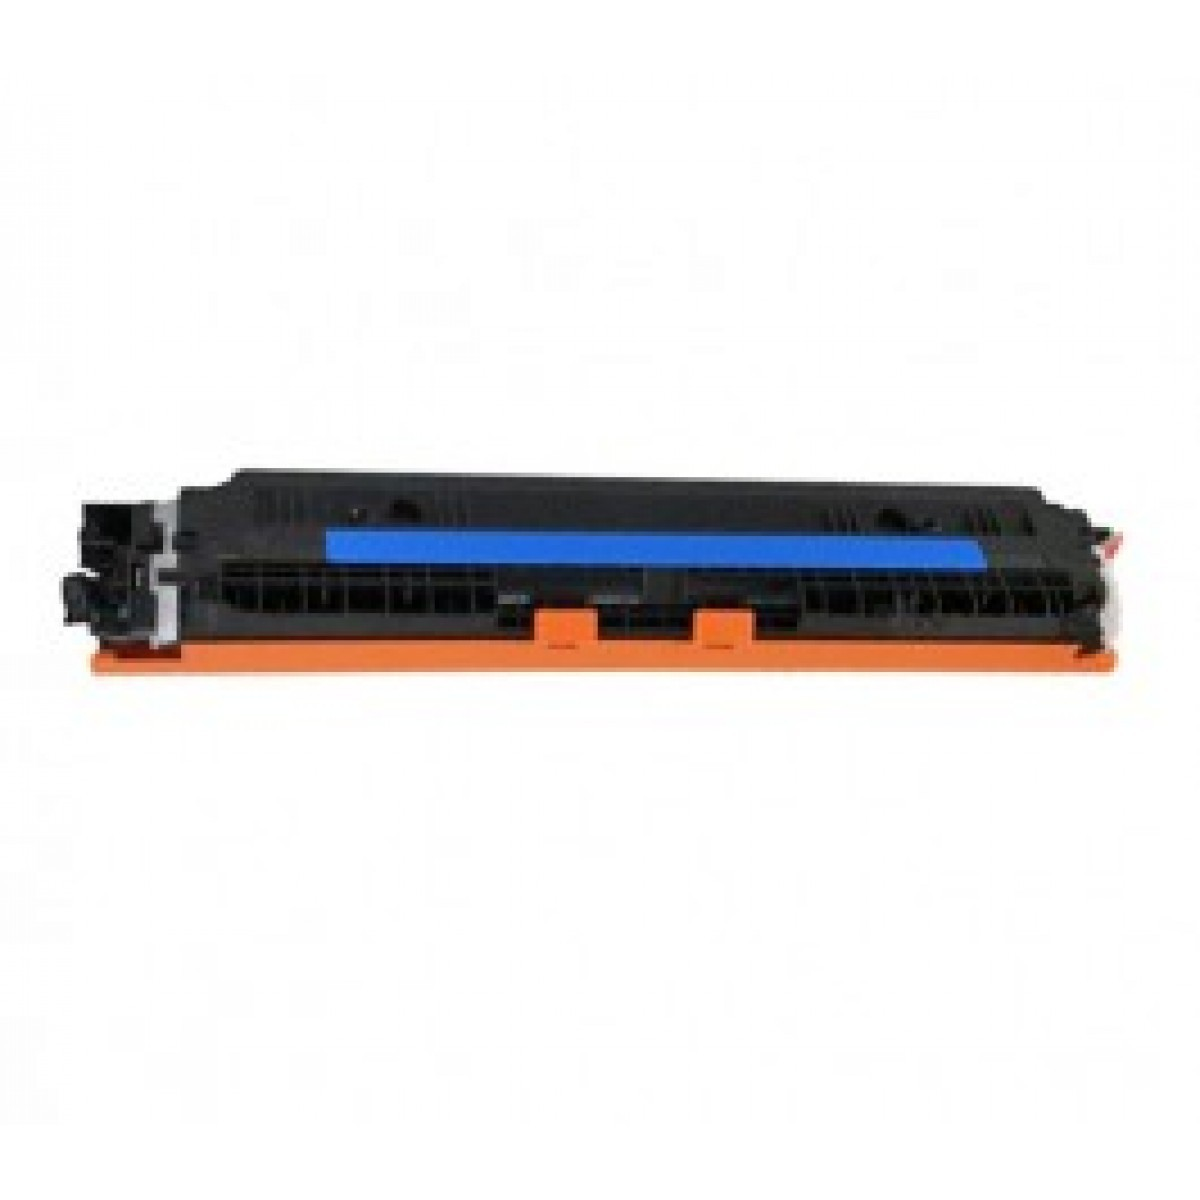 toner HP CE311A  CF351 M176  CE311 CE311. Ciano 126A COMPATIVEL LaserjetCP-1025, CP-1025NW, CP-1020, CP-1020NW, M-175A, M275, M-275, M177